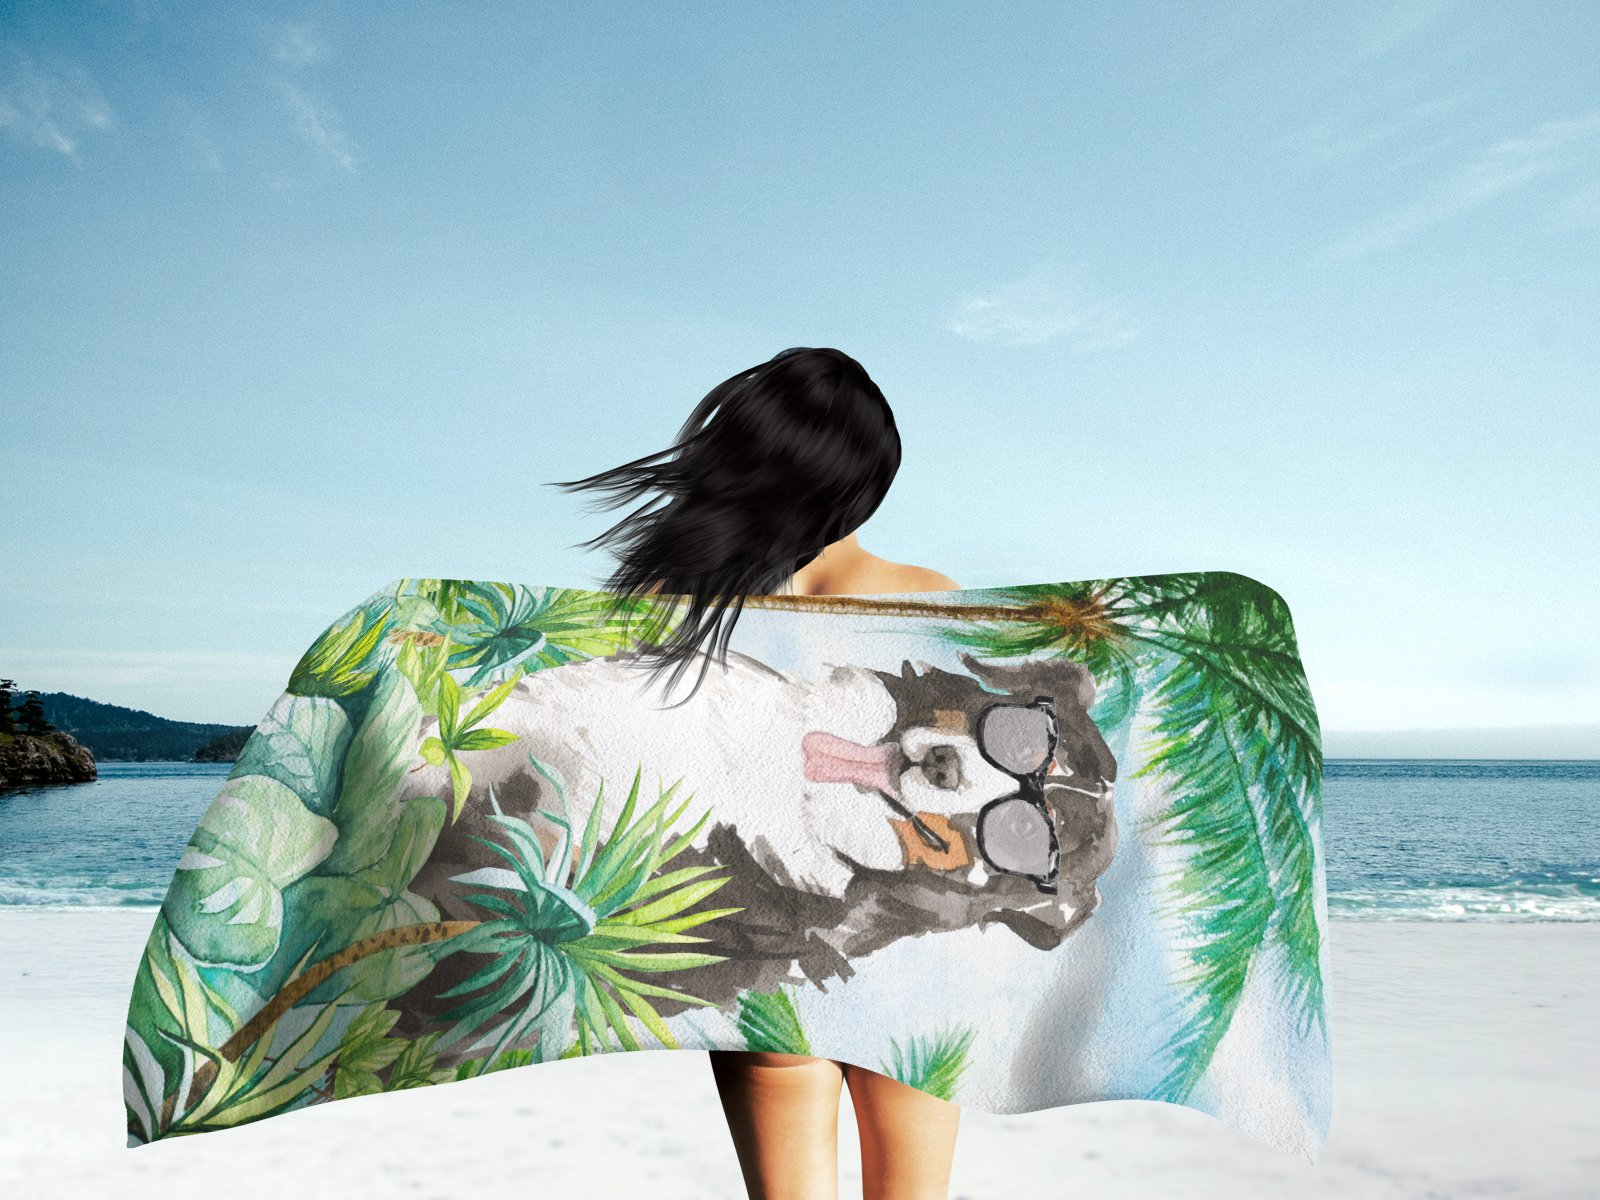 Bernese Mountain Dog Premium Beach Towel CK3025TWL3060 by Caroline's Treasures